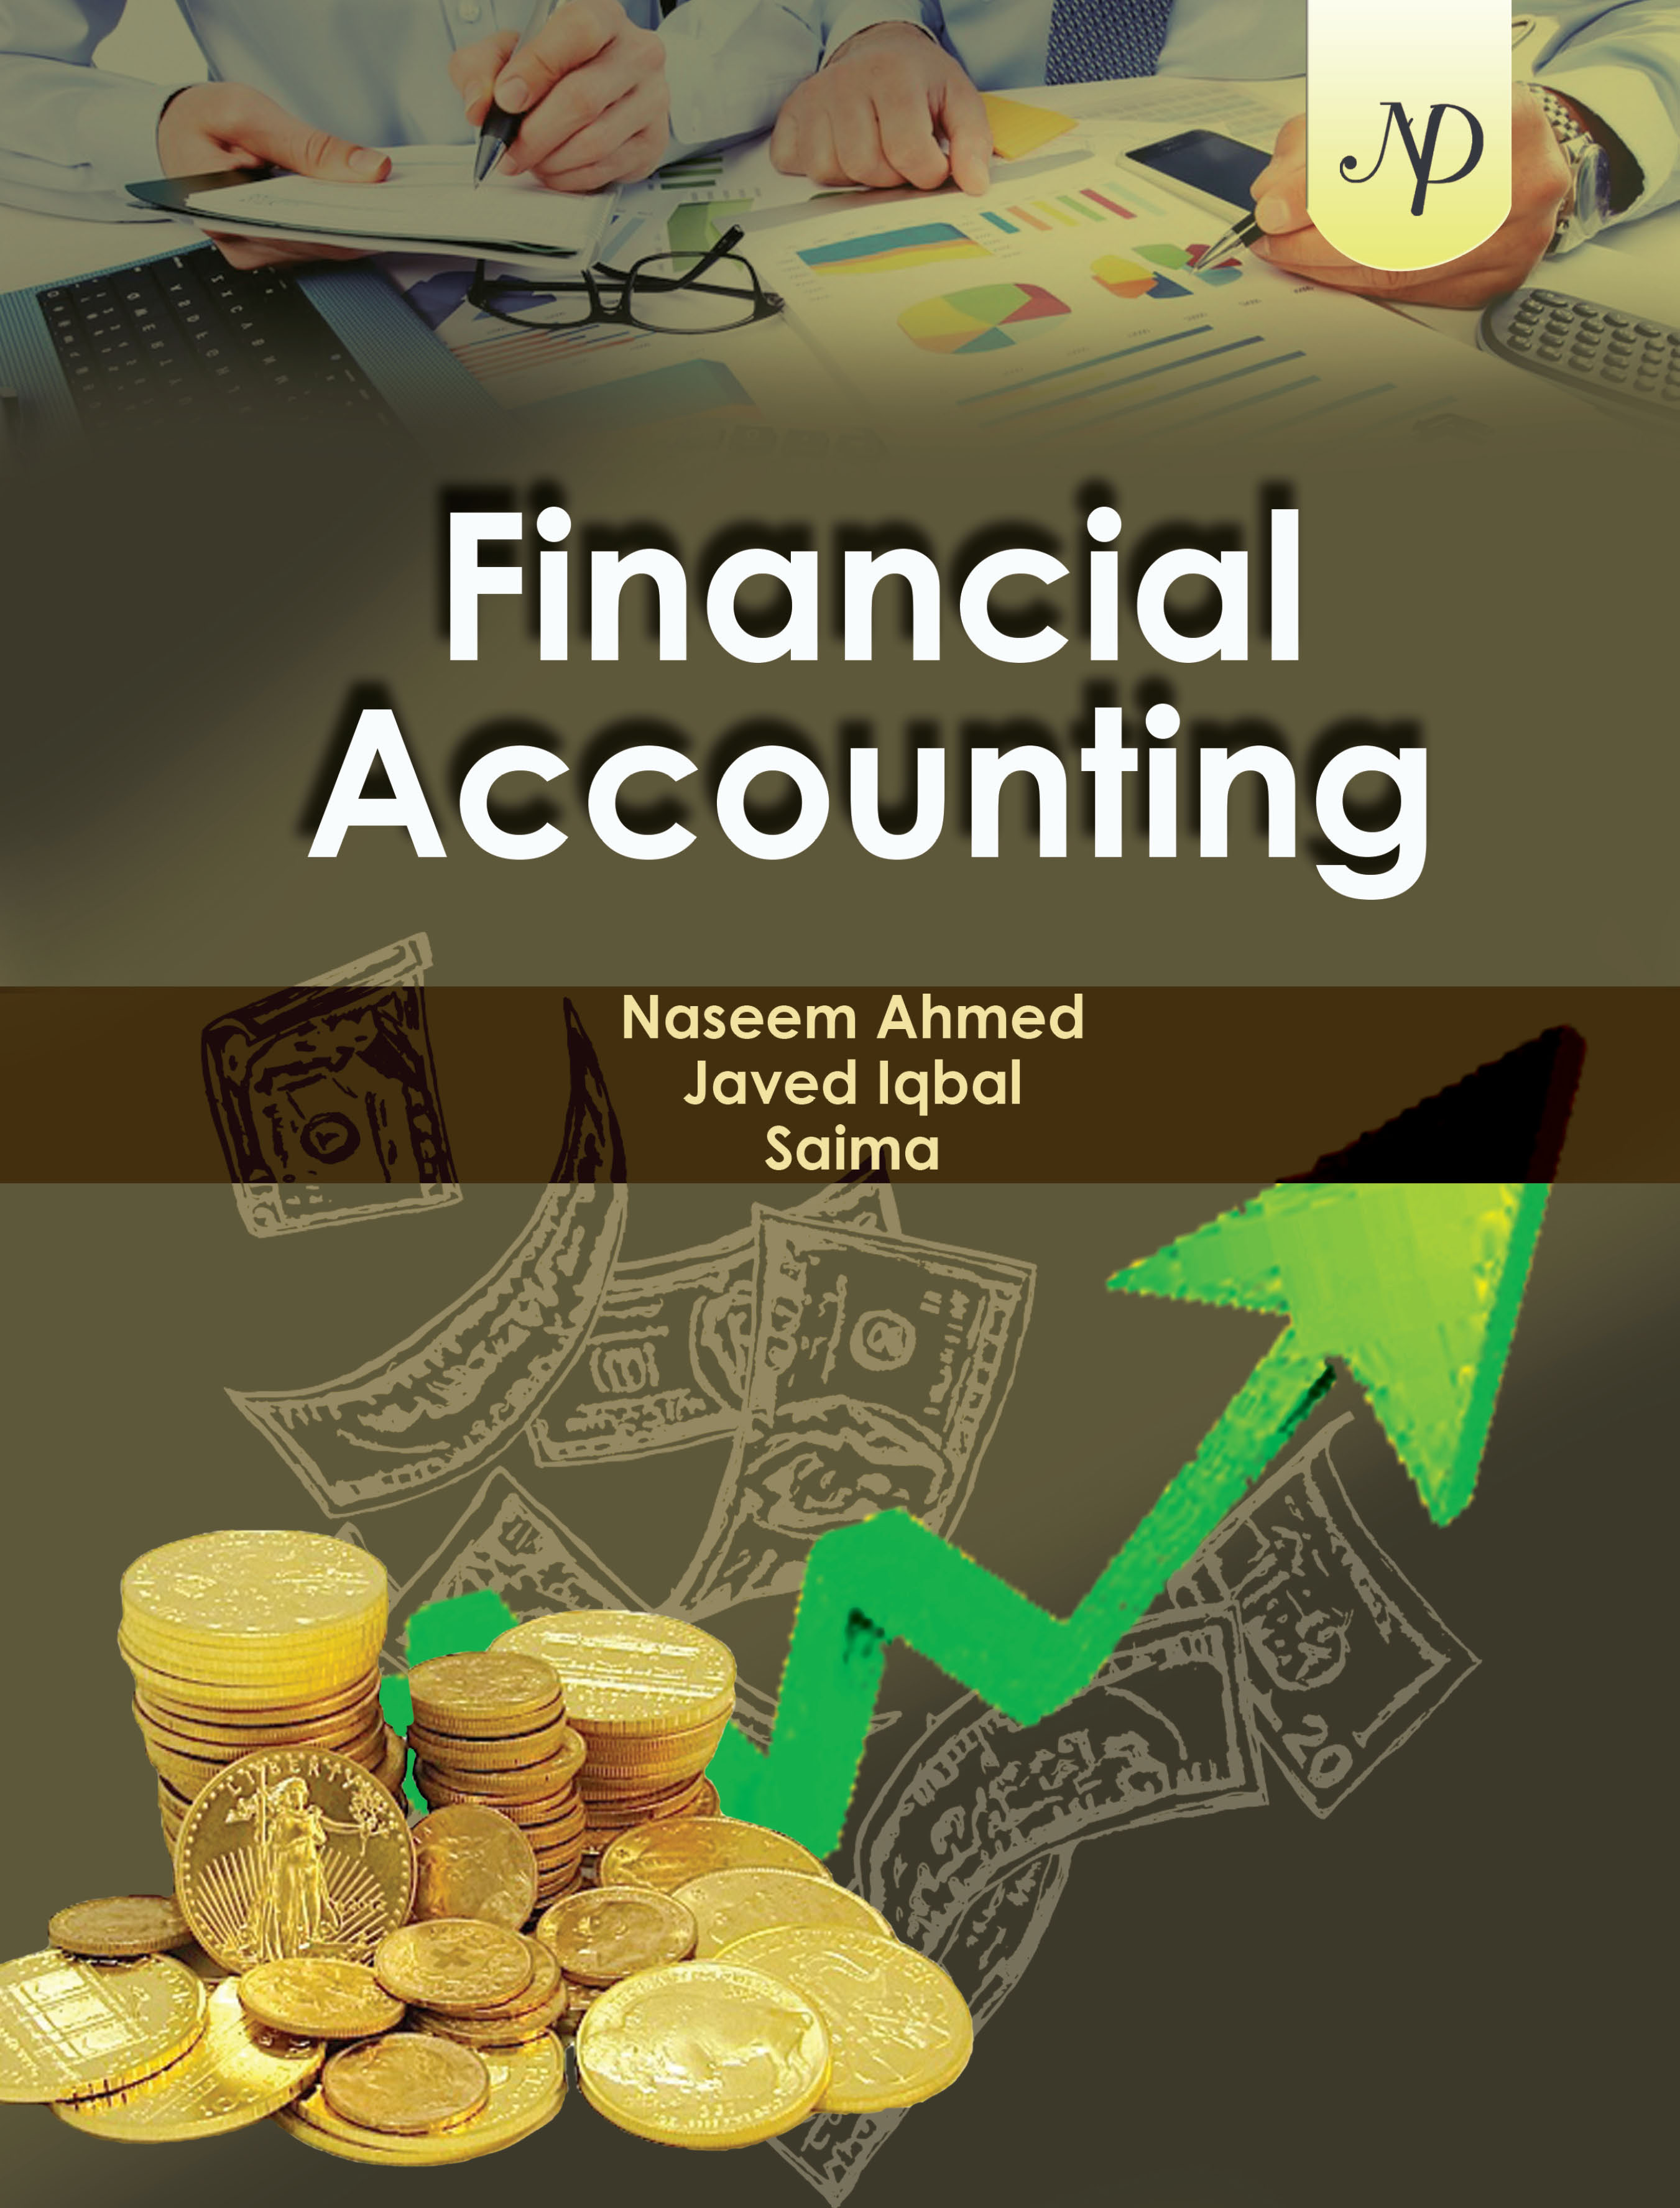 Financial Accounting Cover final.jpg